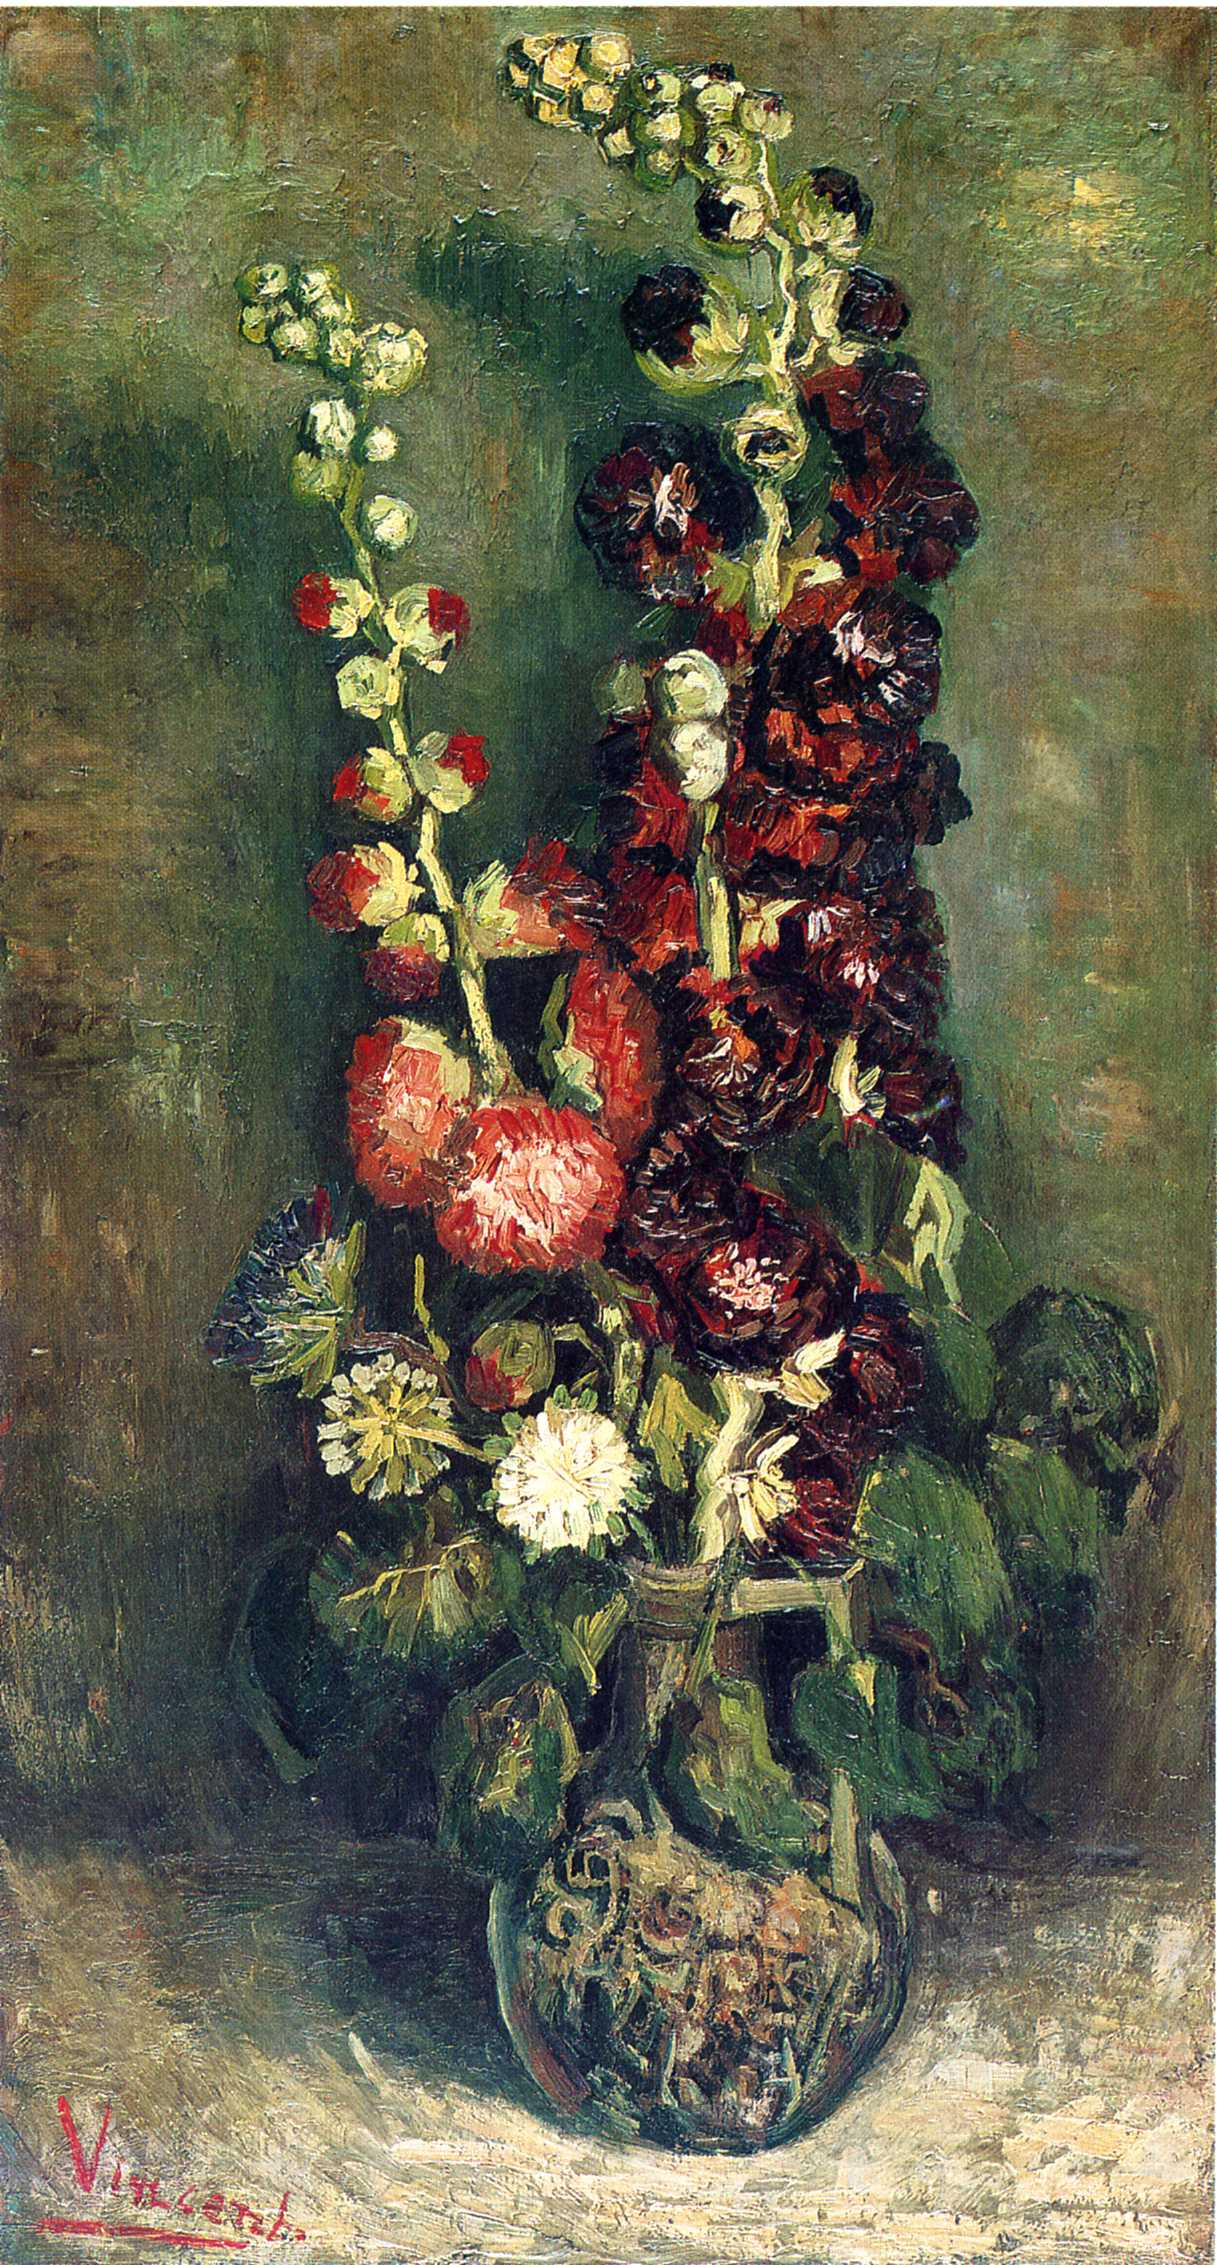 Vase of hollyhocks 1886 vincent van gogh wikiart vase of hollyhocks 1886 vincent van gogh reviewsmspy